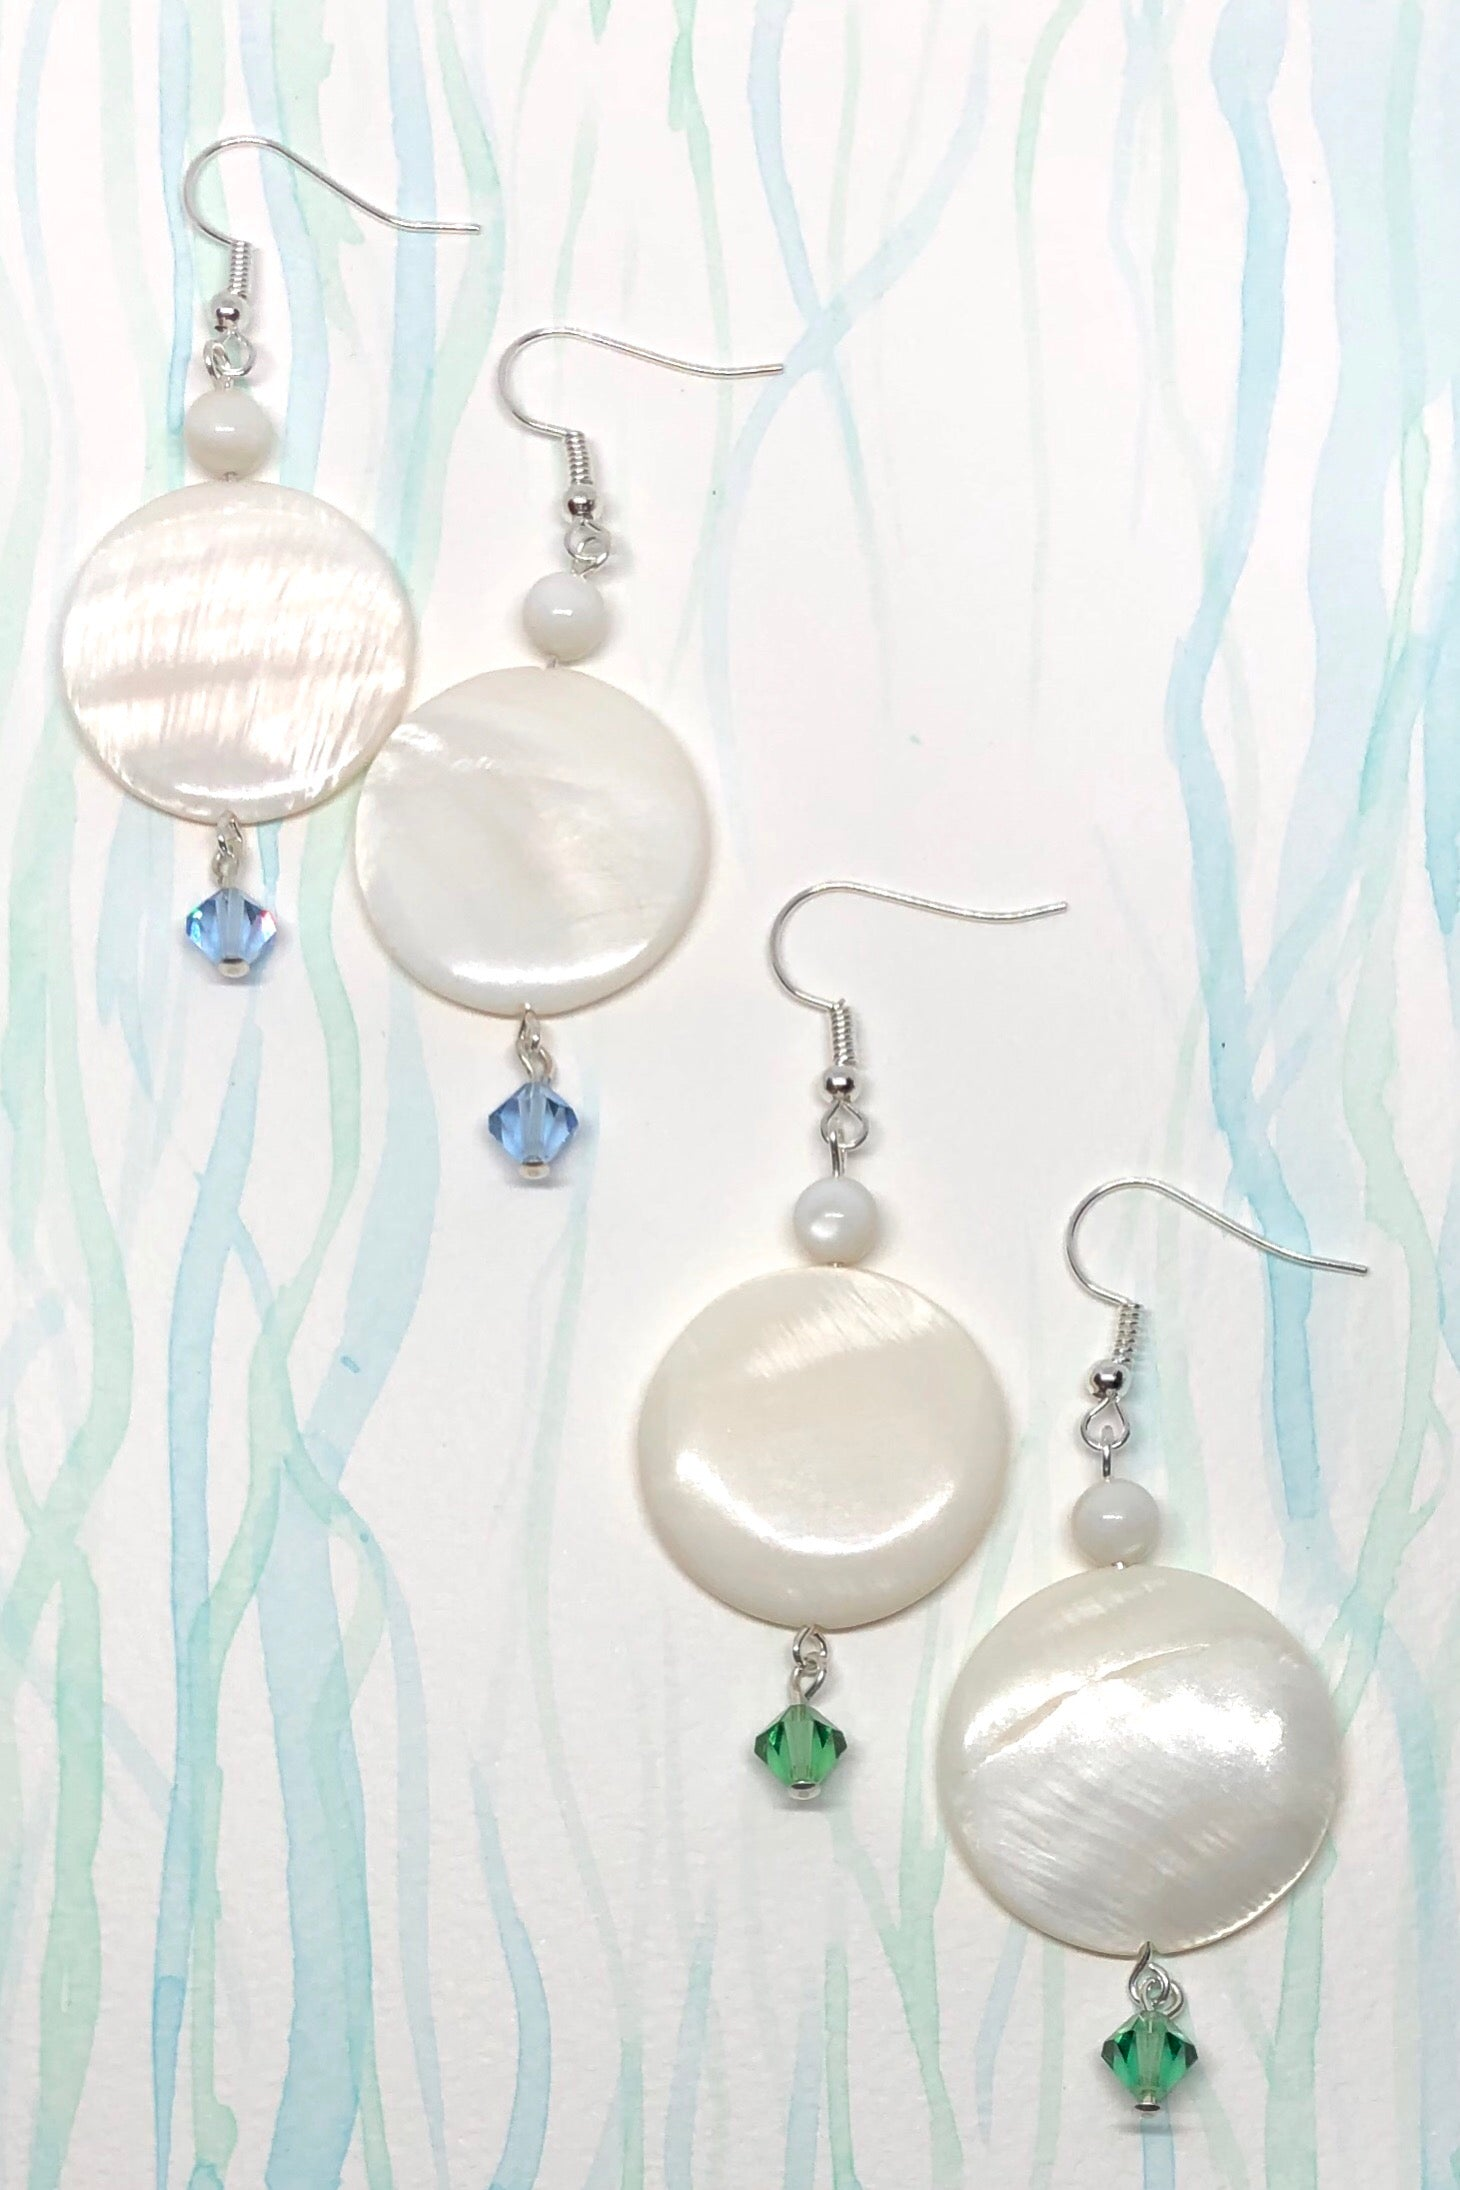 Mother of pearl sea shell earrings features cut Swarovski Crystal bead in sea blue or seaweed green, Boho Luxe beach style.